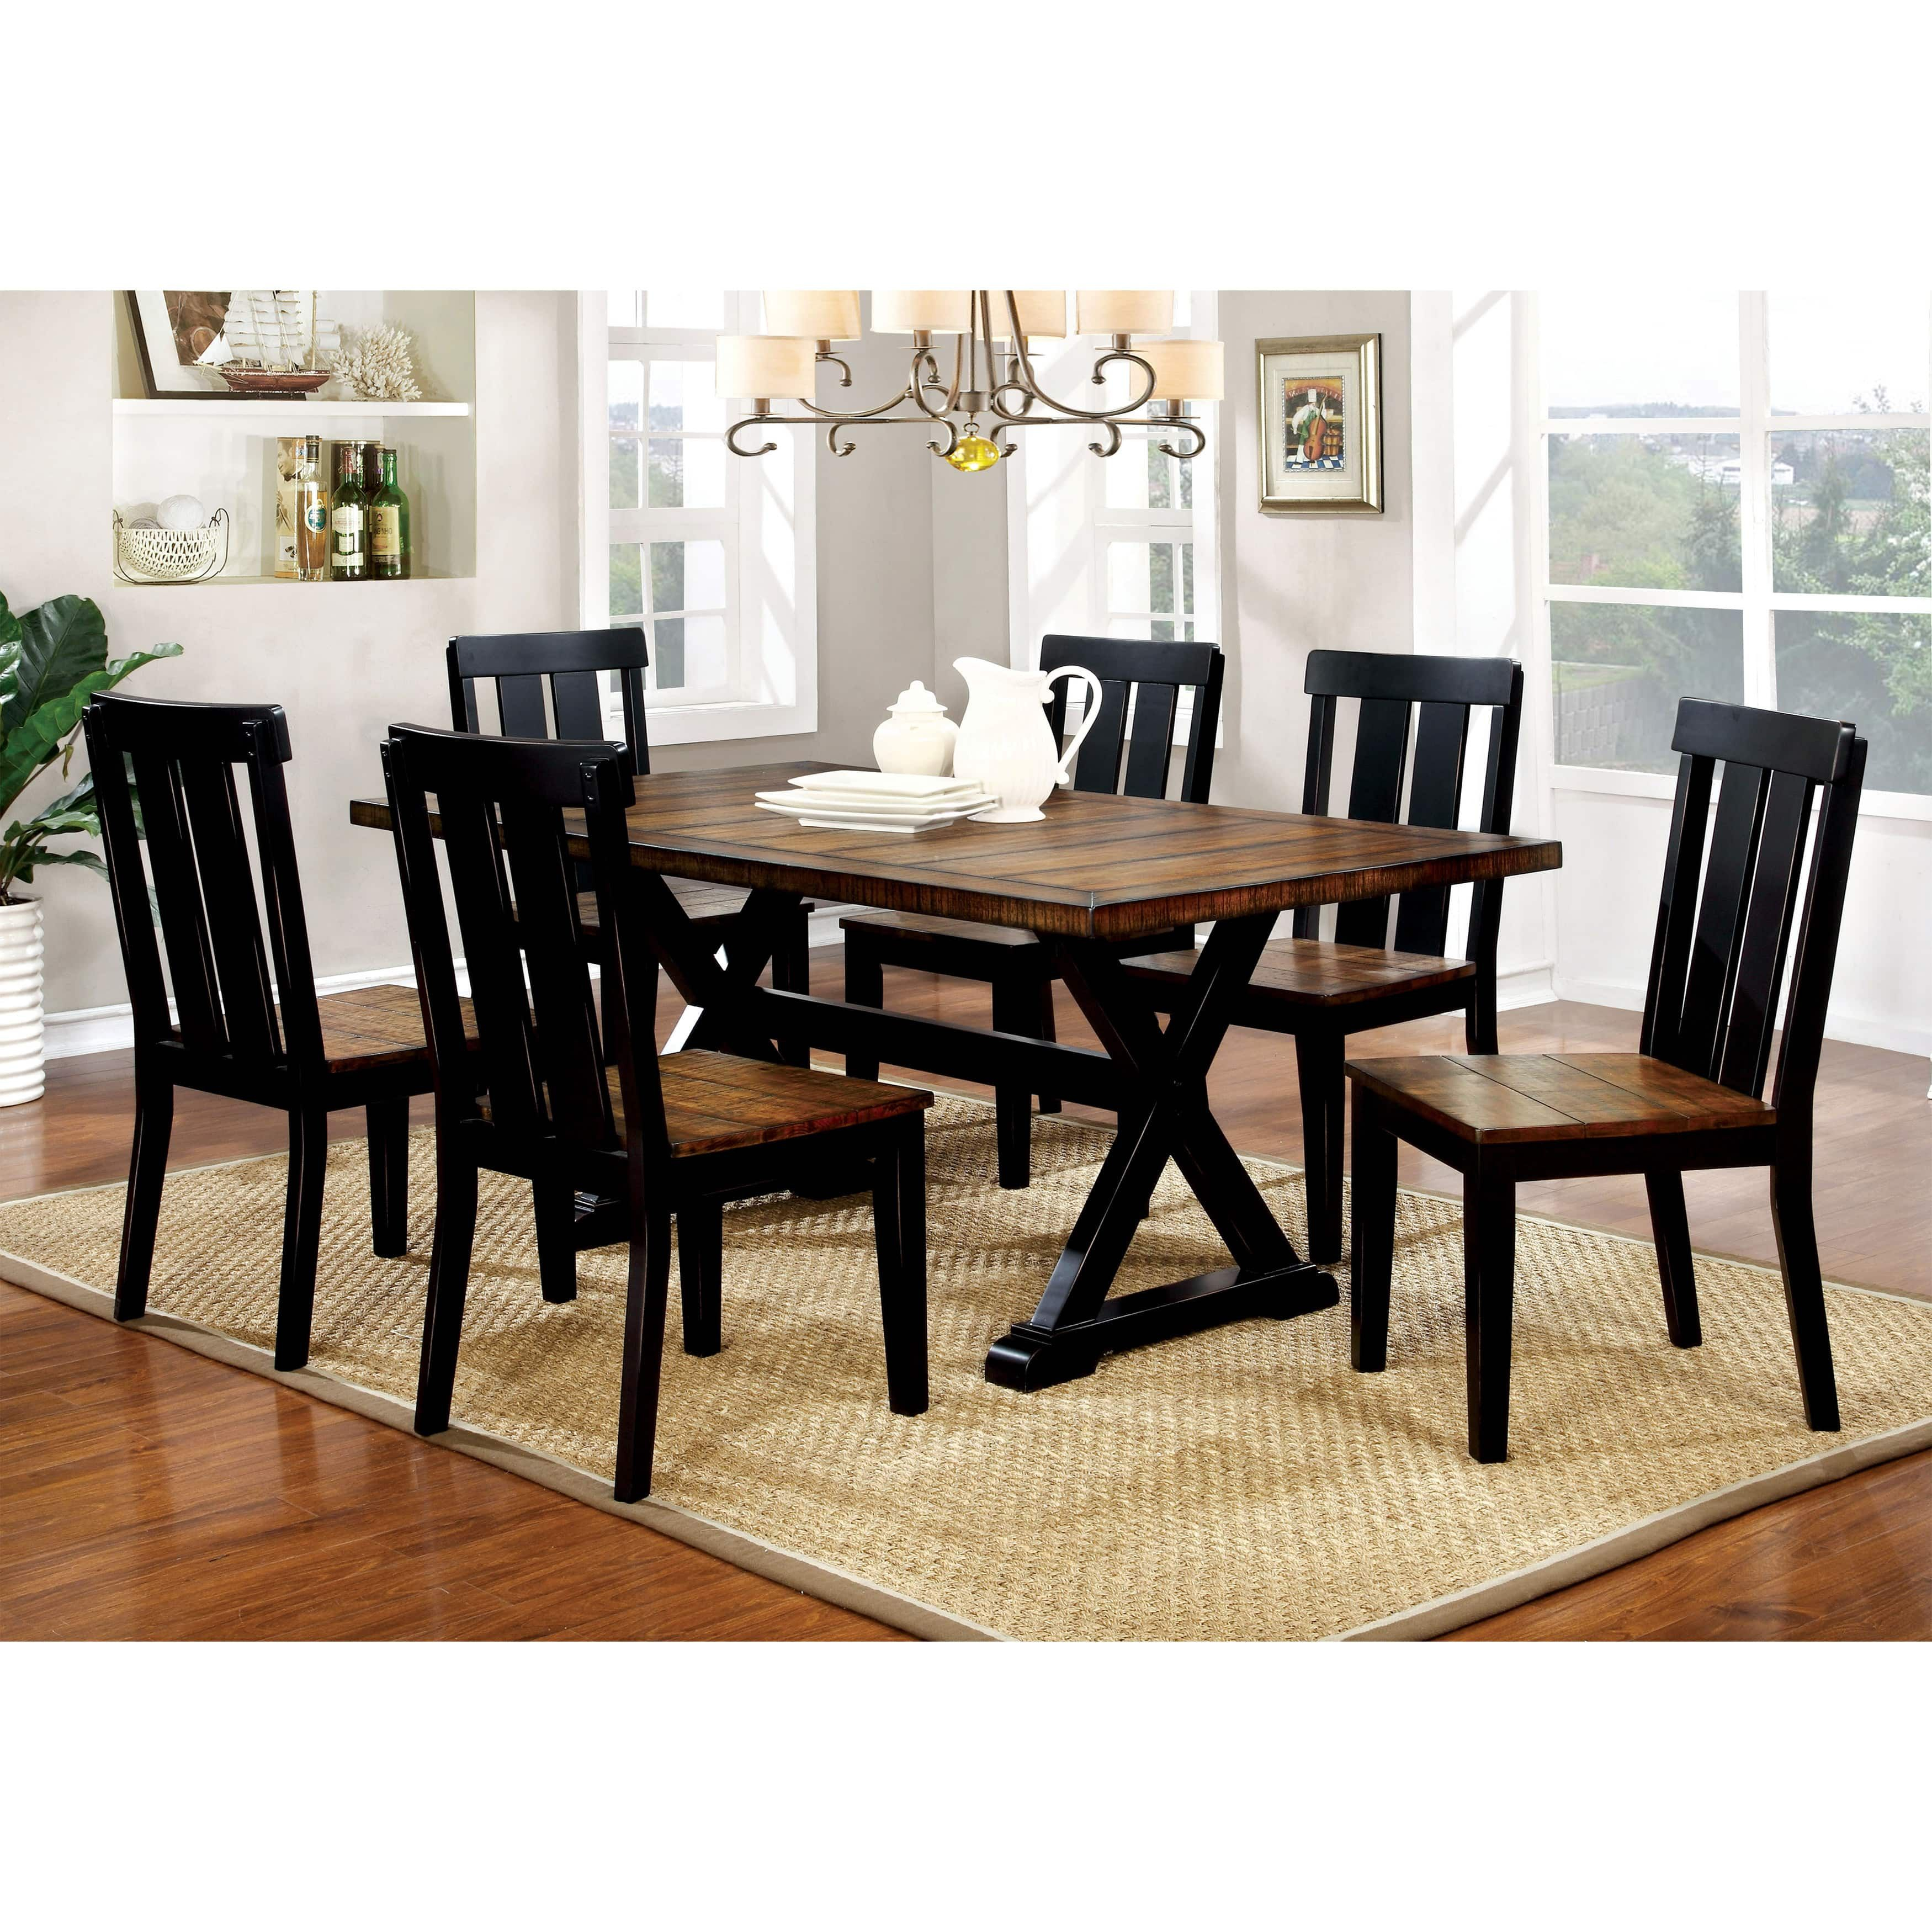 Furniture Of America Lara Farmhouse Style 7 Piece Two Tone Antique Pertaining To Recent Goodman 5 Piece Solid Wood Dining Sets (Set Of 5) (View 6 of 20)